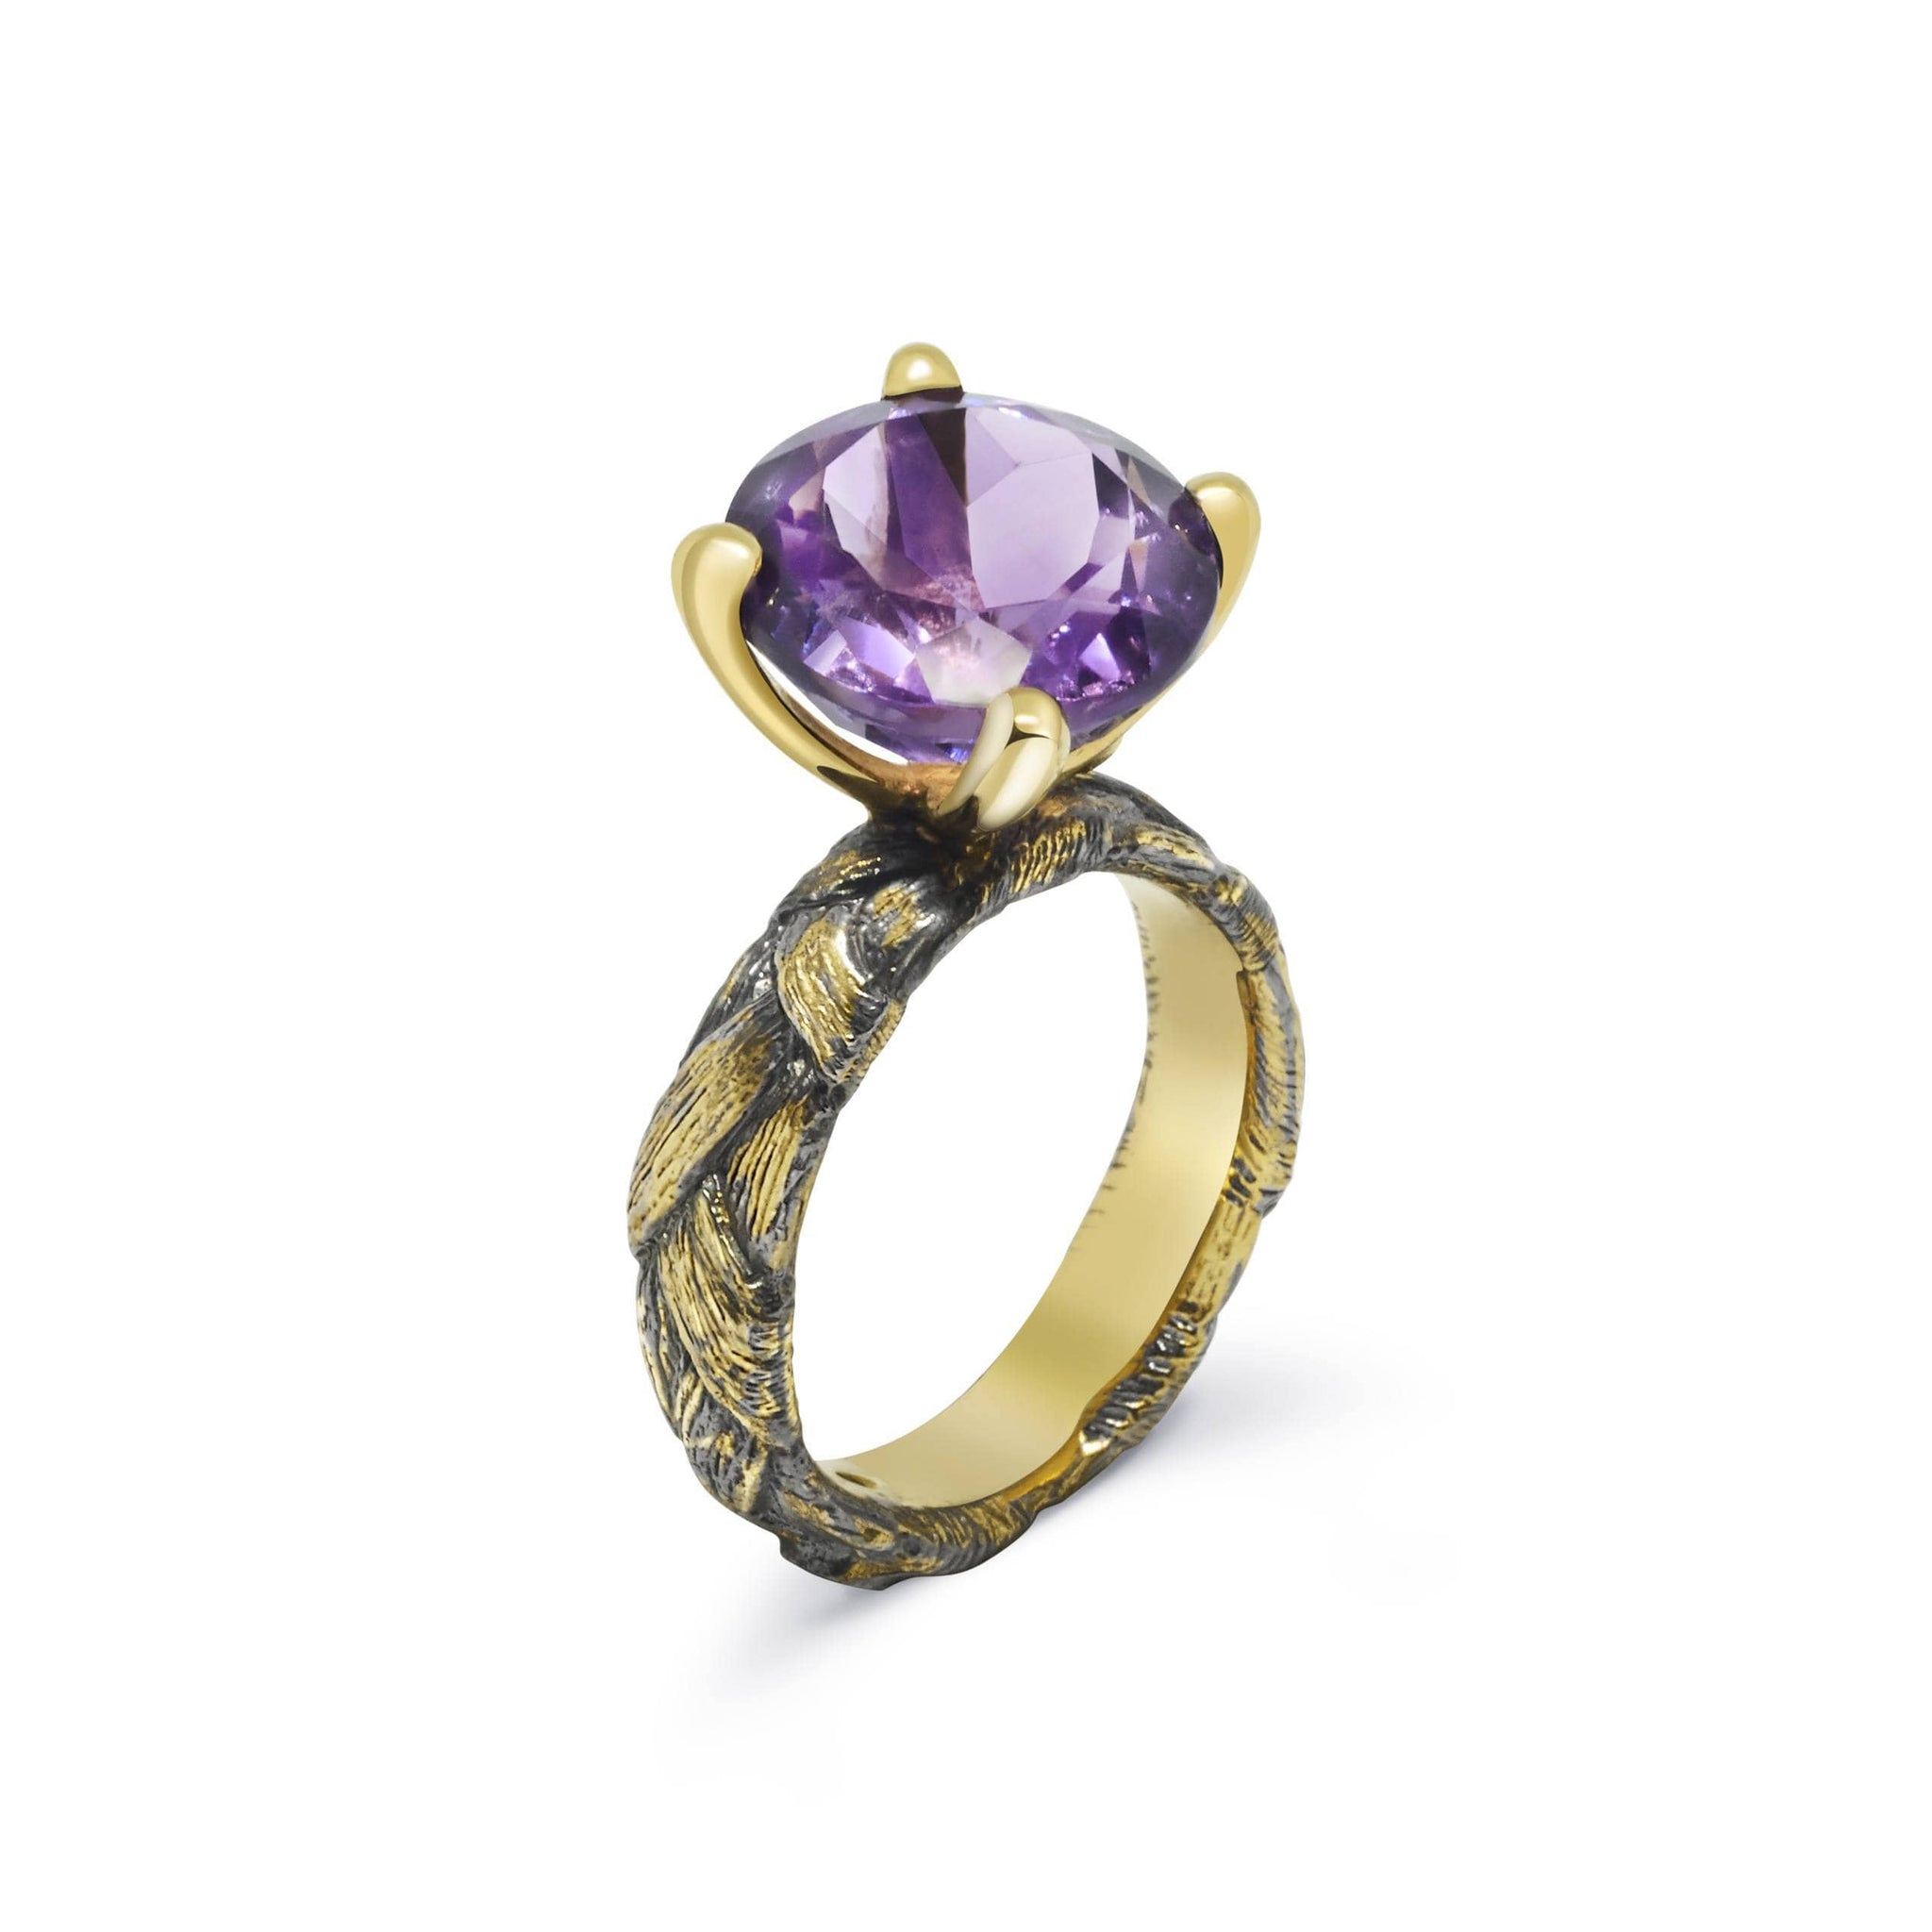 Ply Unique Ring with Amethyst - Rara Jewelry